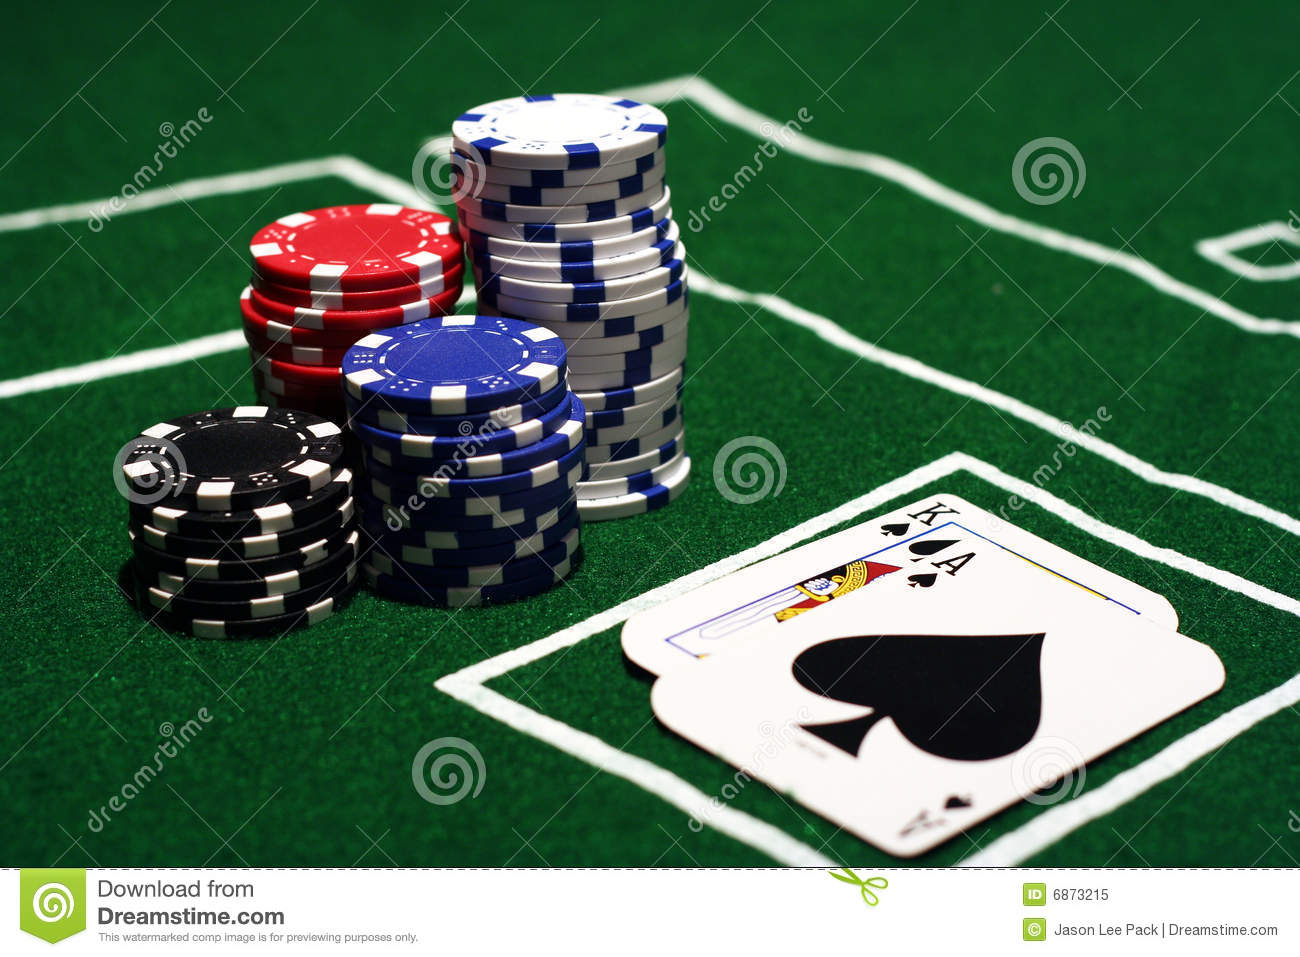 How Do You Play 3 Card Poker, Games Online Poker